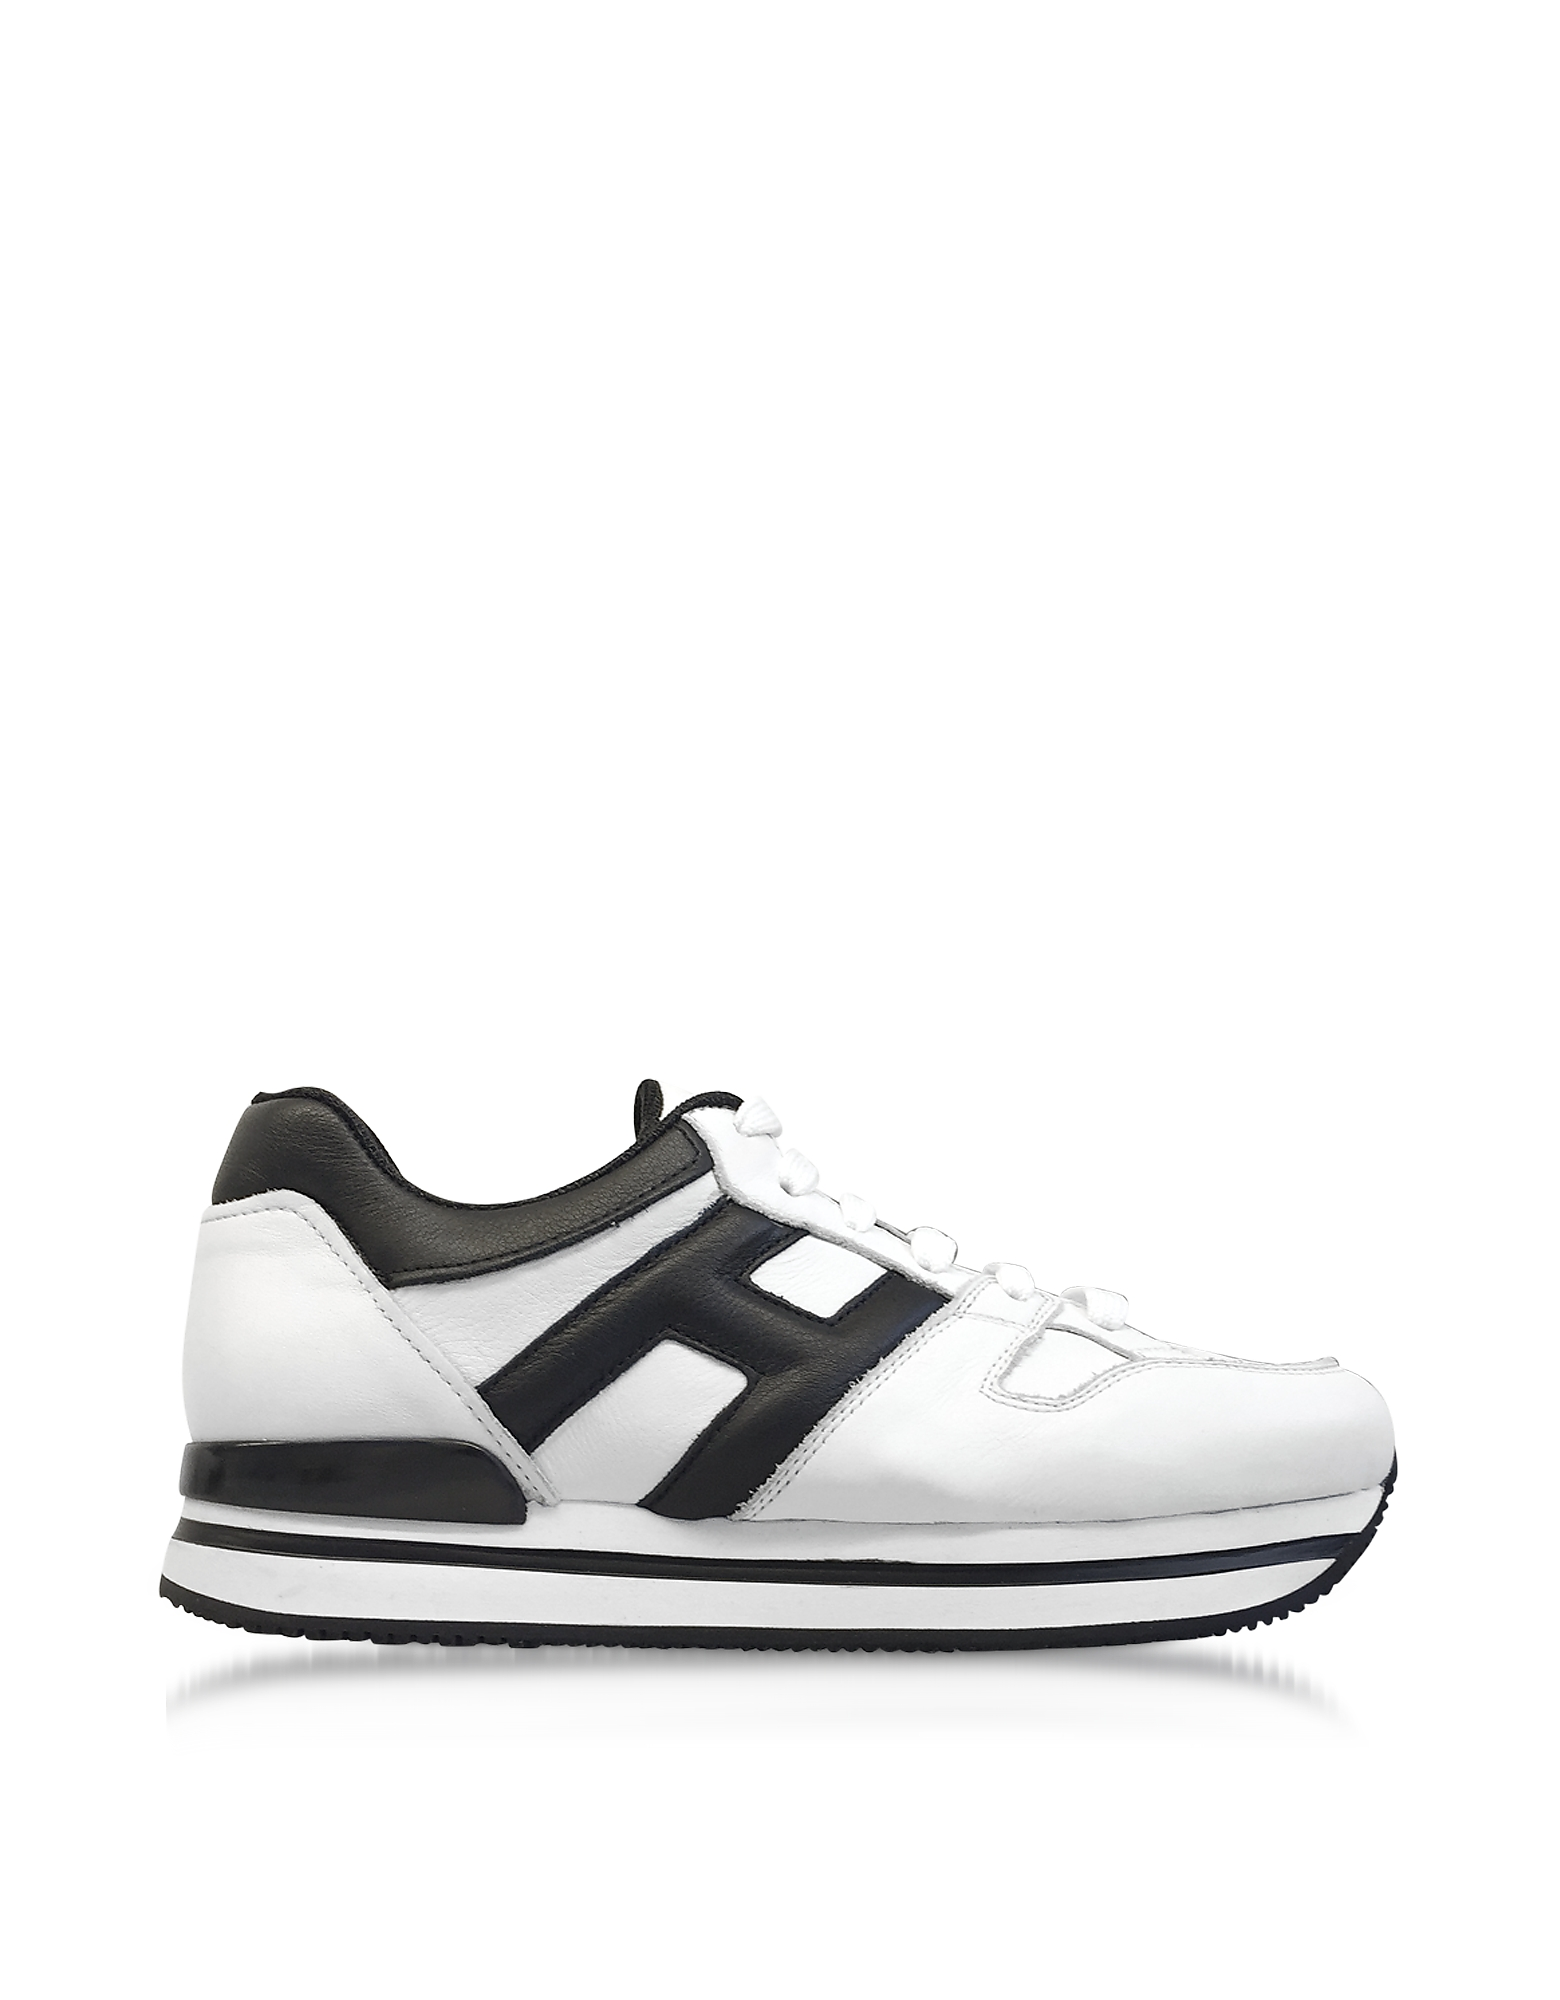 Hogan Shoes, Maxi H222 Black and White Leather Ultra-light Flatform Sneakers